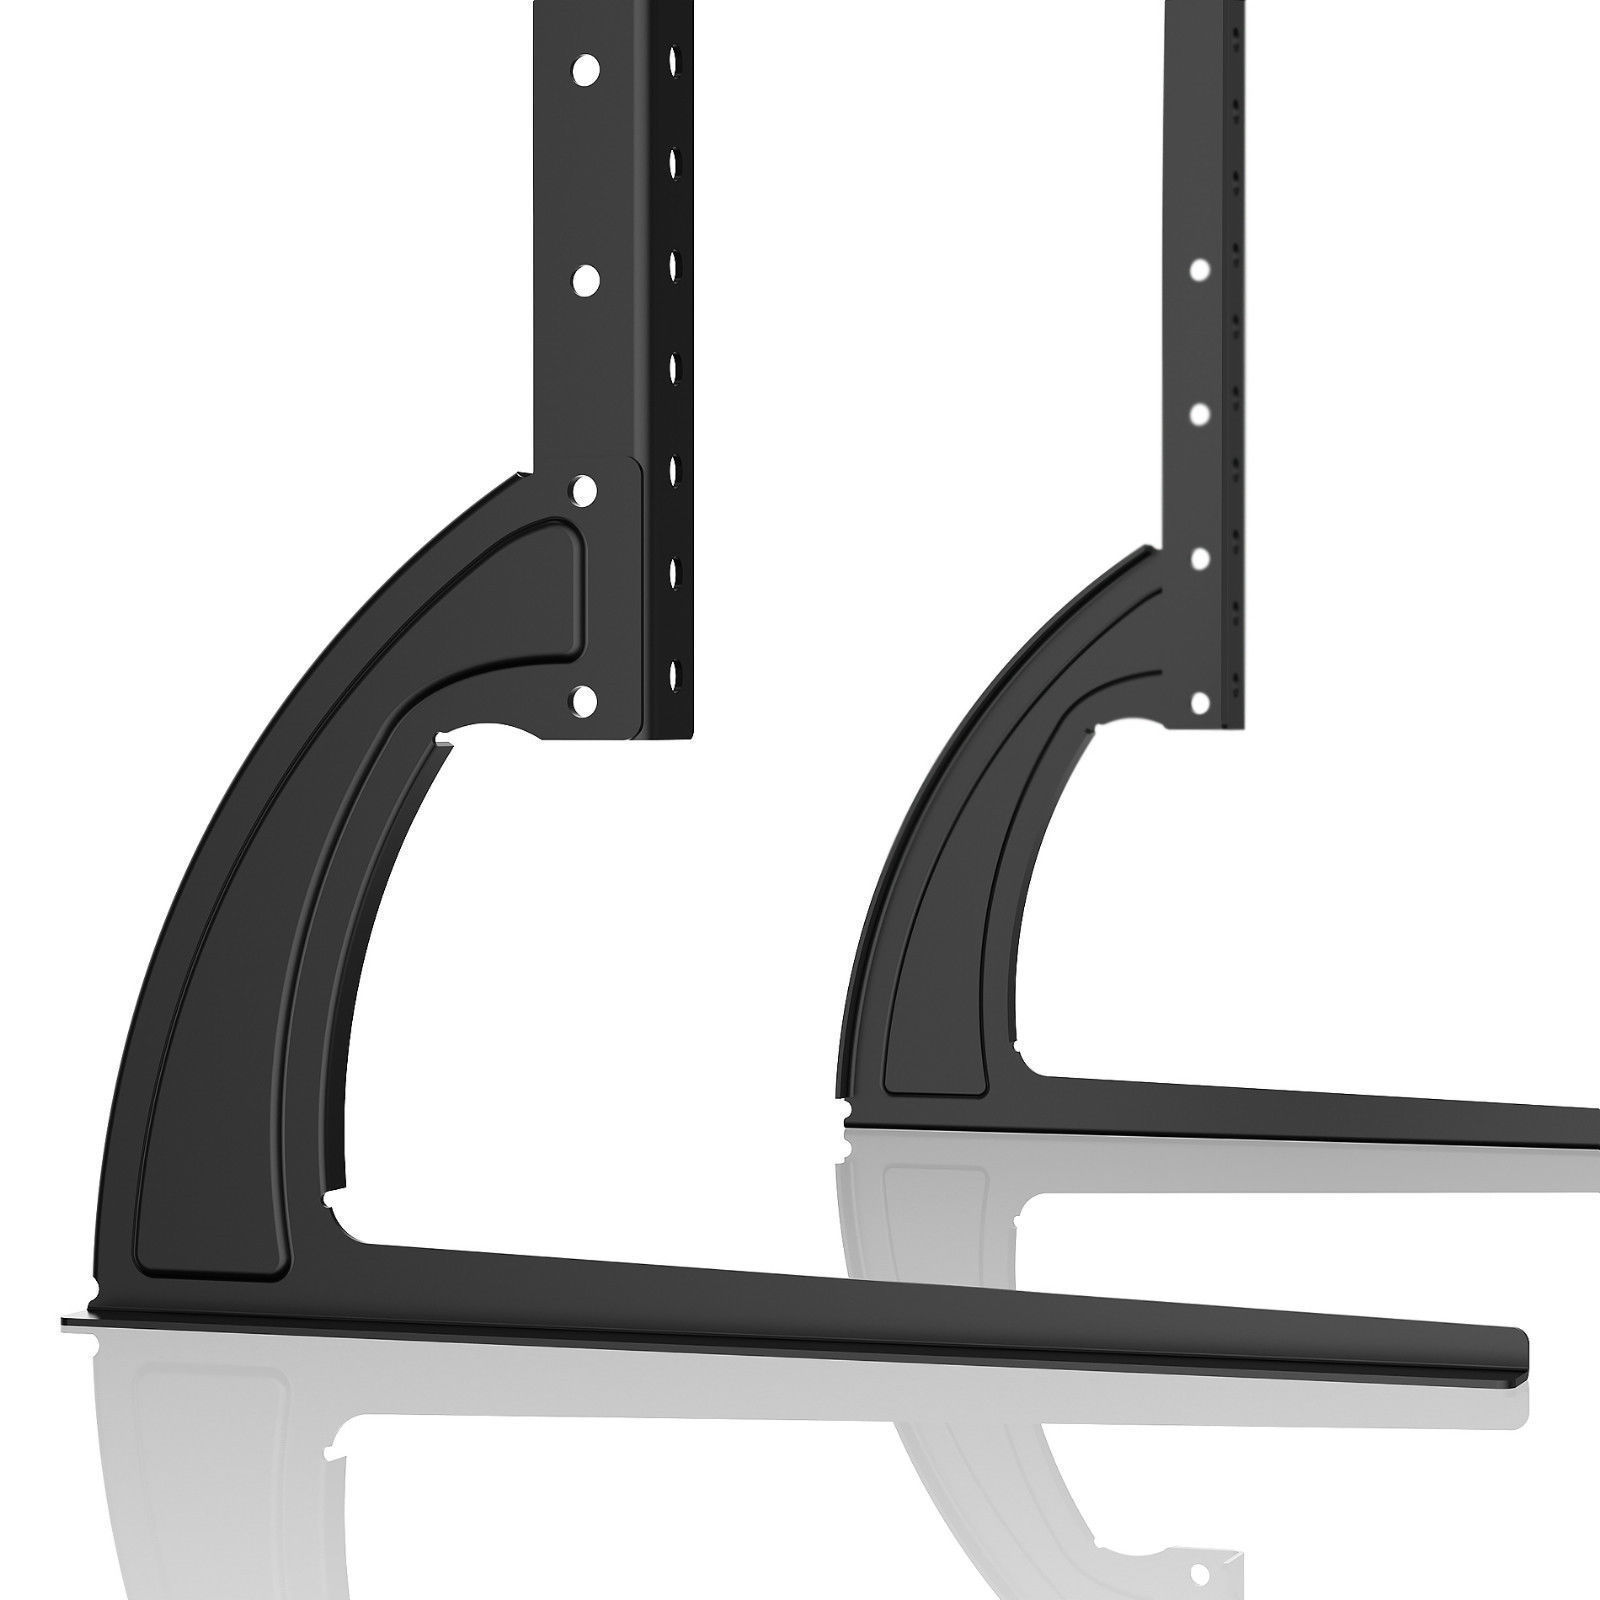 Universal Table Top TV Stand Legs for LG 55LA6205 Height Adjustable